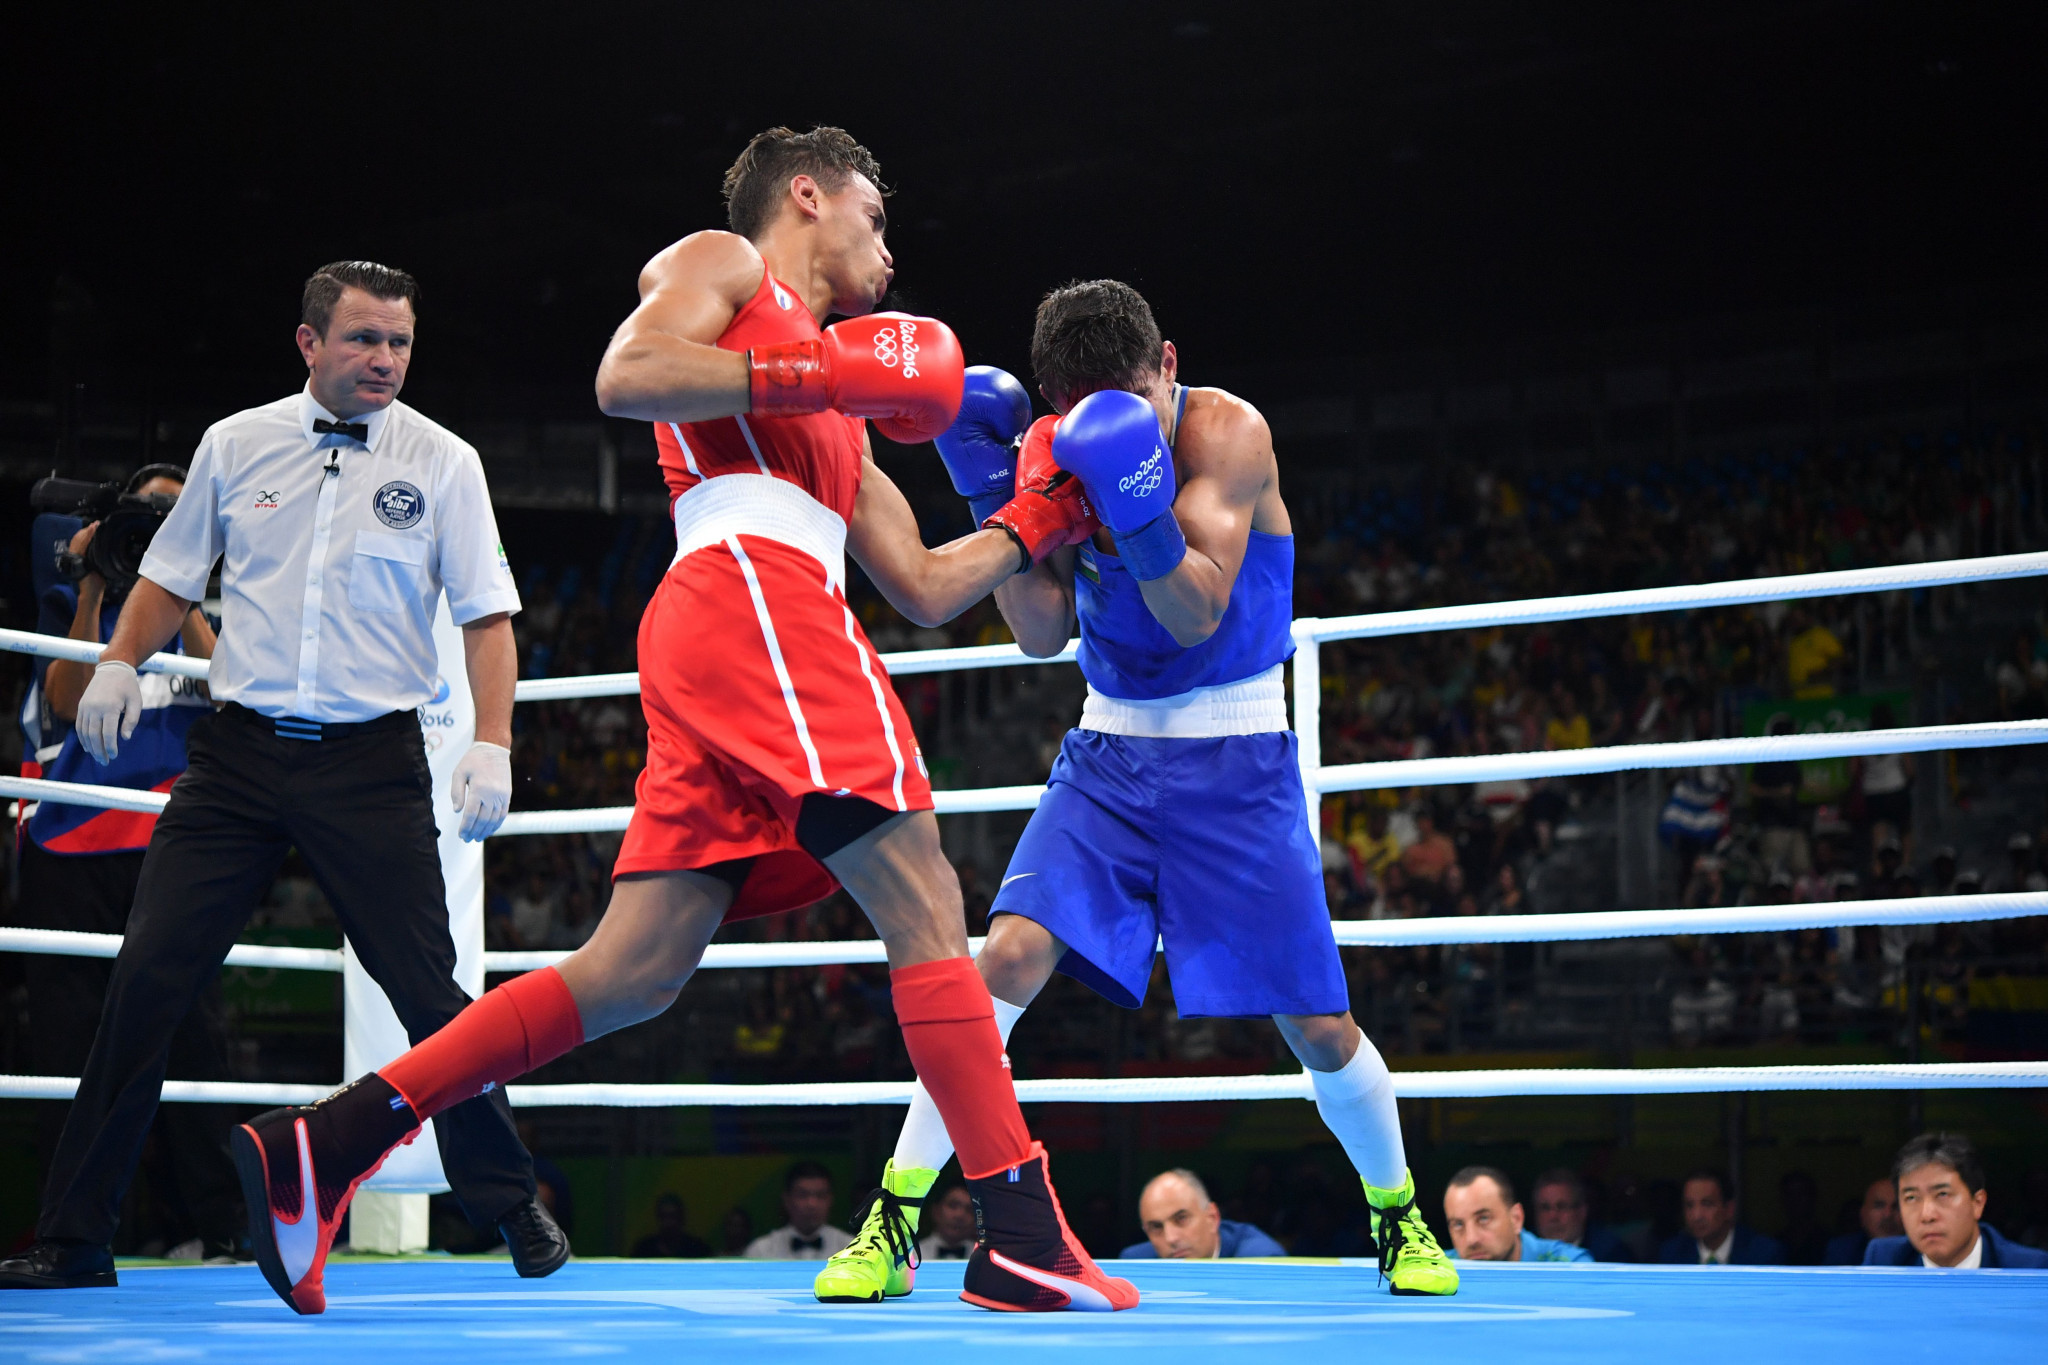 Boxing's Olympic future remains very much in doubt ©Getty Images